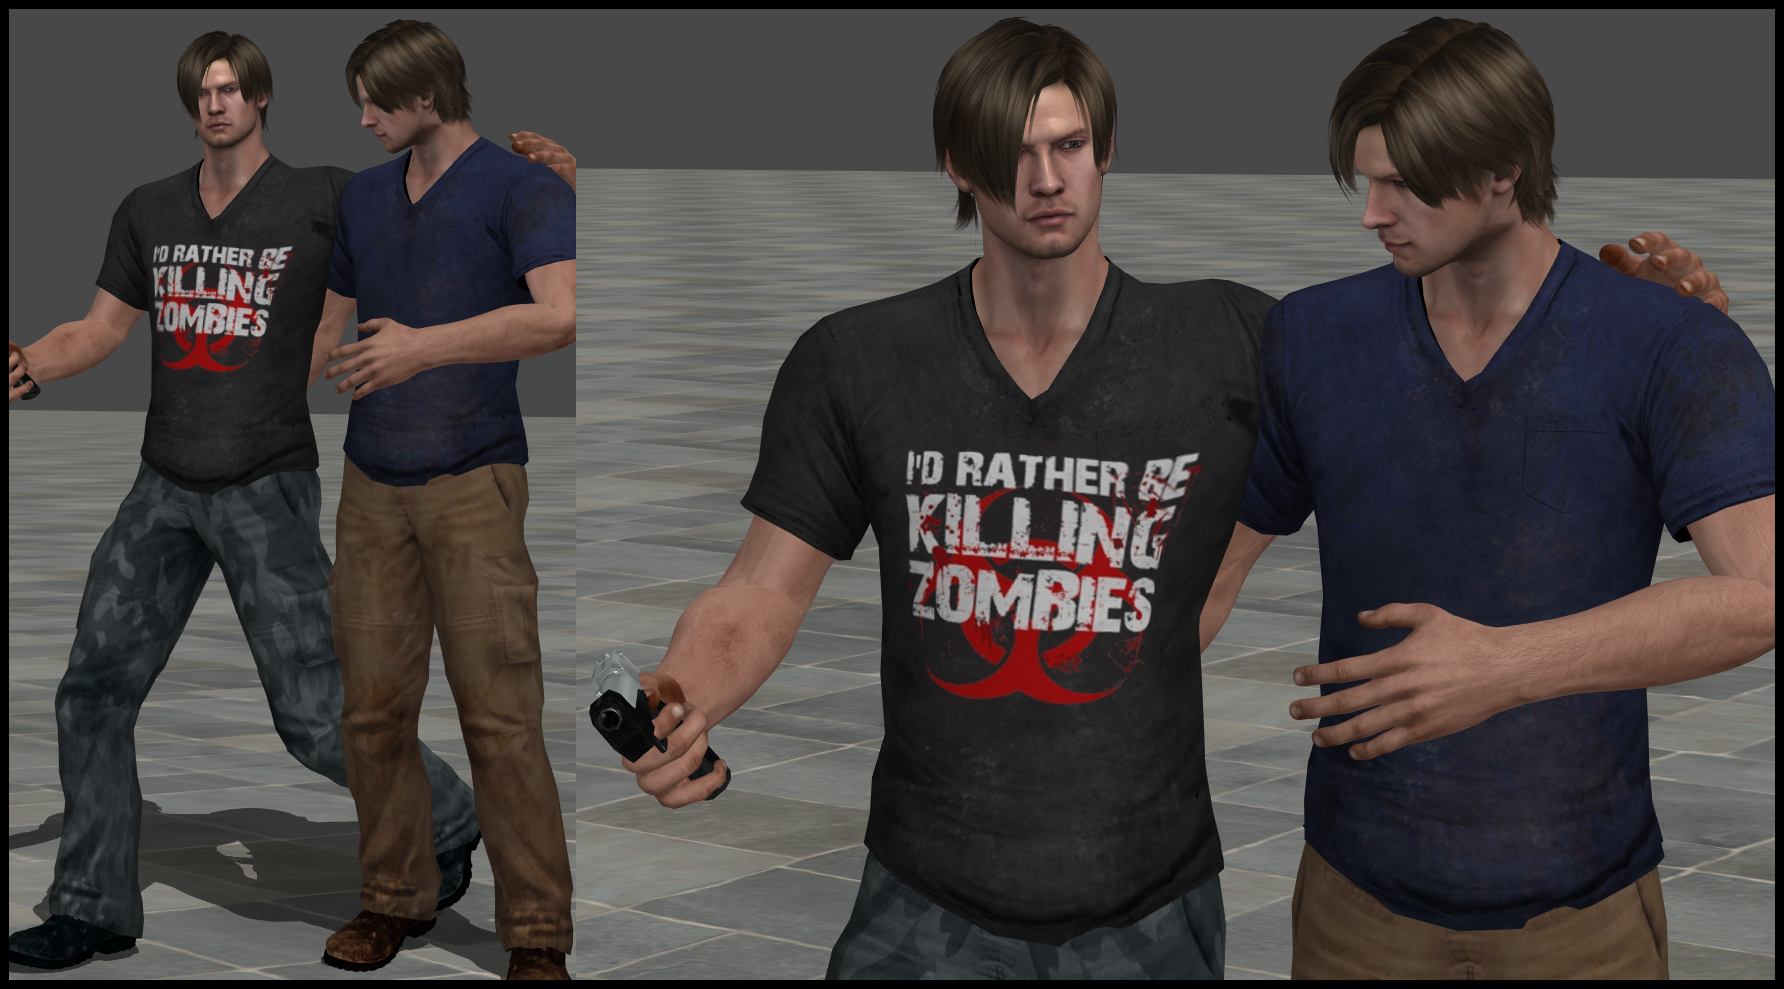 mod claire para leon - Página 3 Leon_killing_zombies__my_first_official_meshmod___by_bakasolo-d6sattr